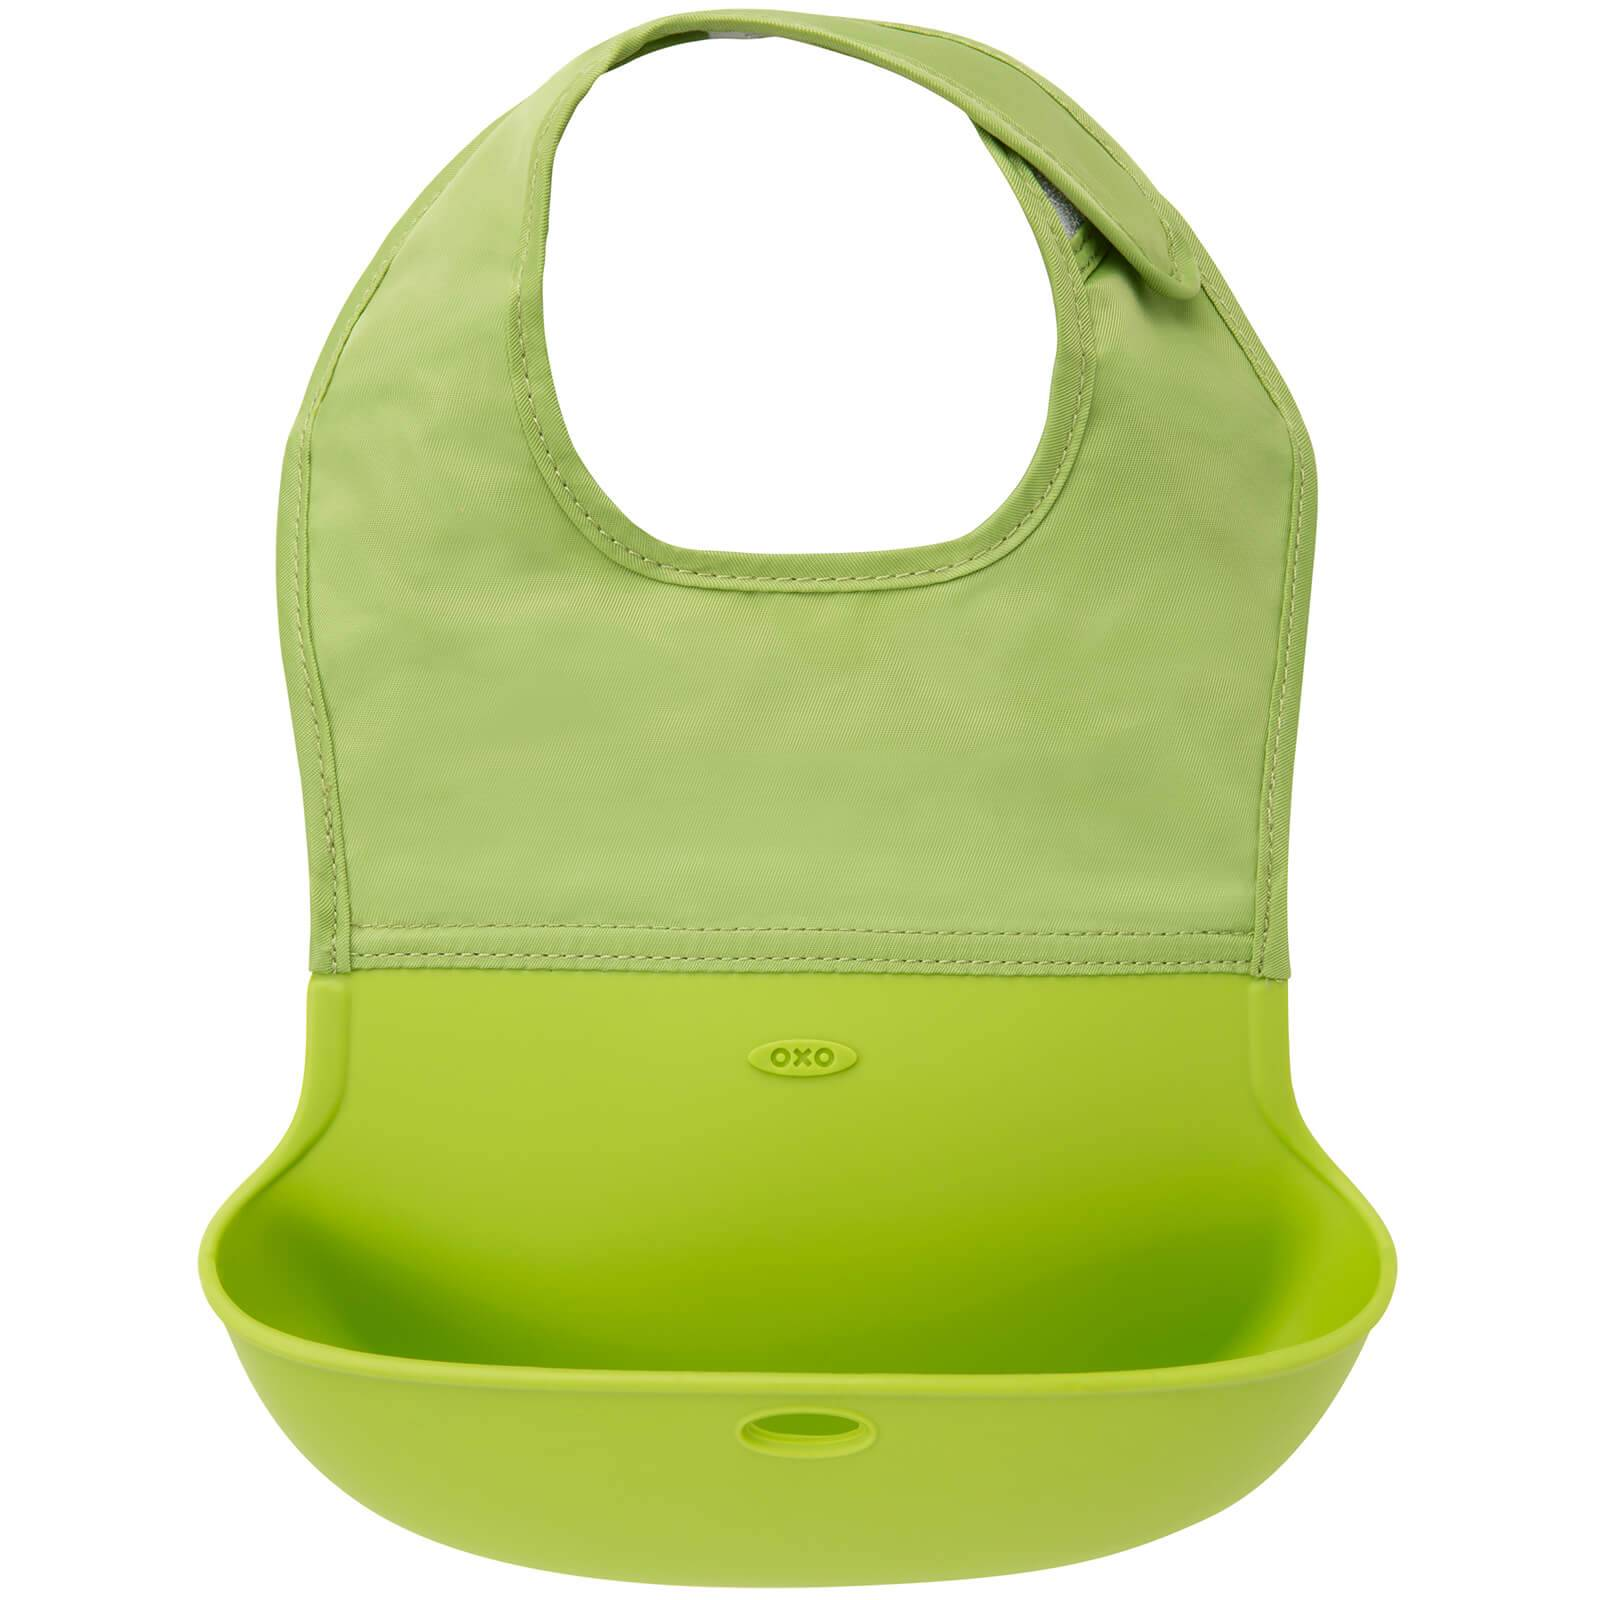 OXO Tot Baby Food Freezer Tray with Silicone Lid (2 Pack)